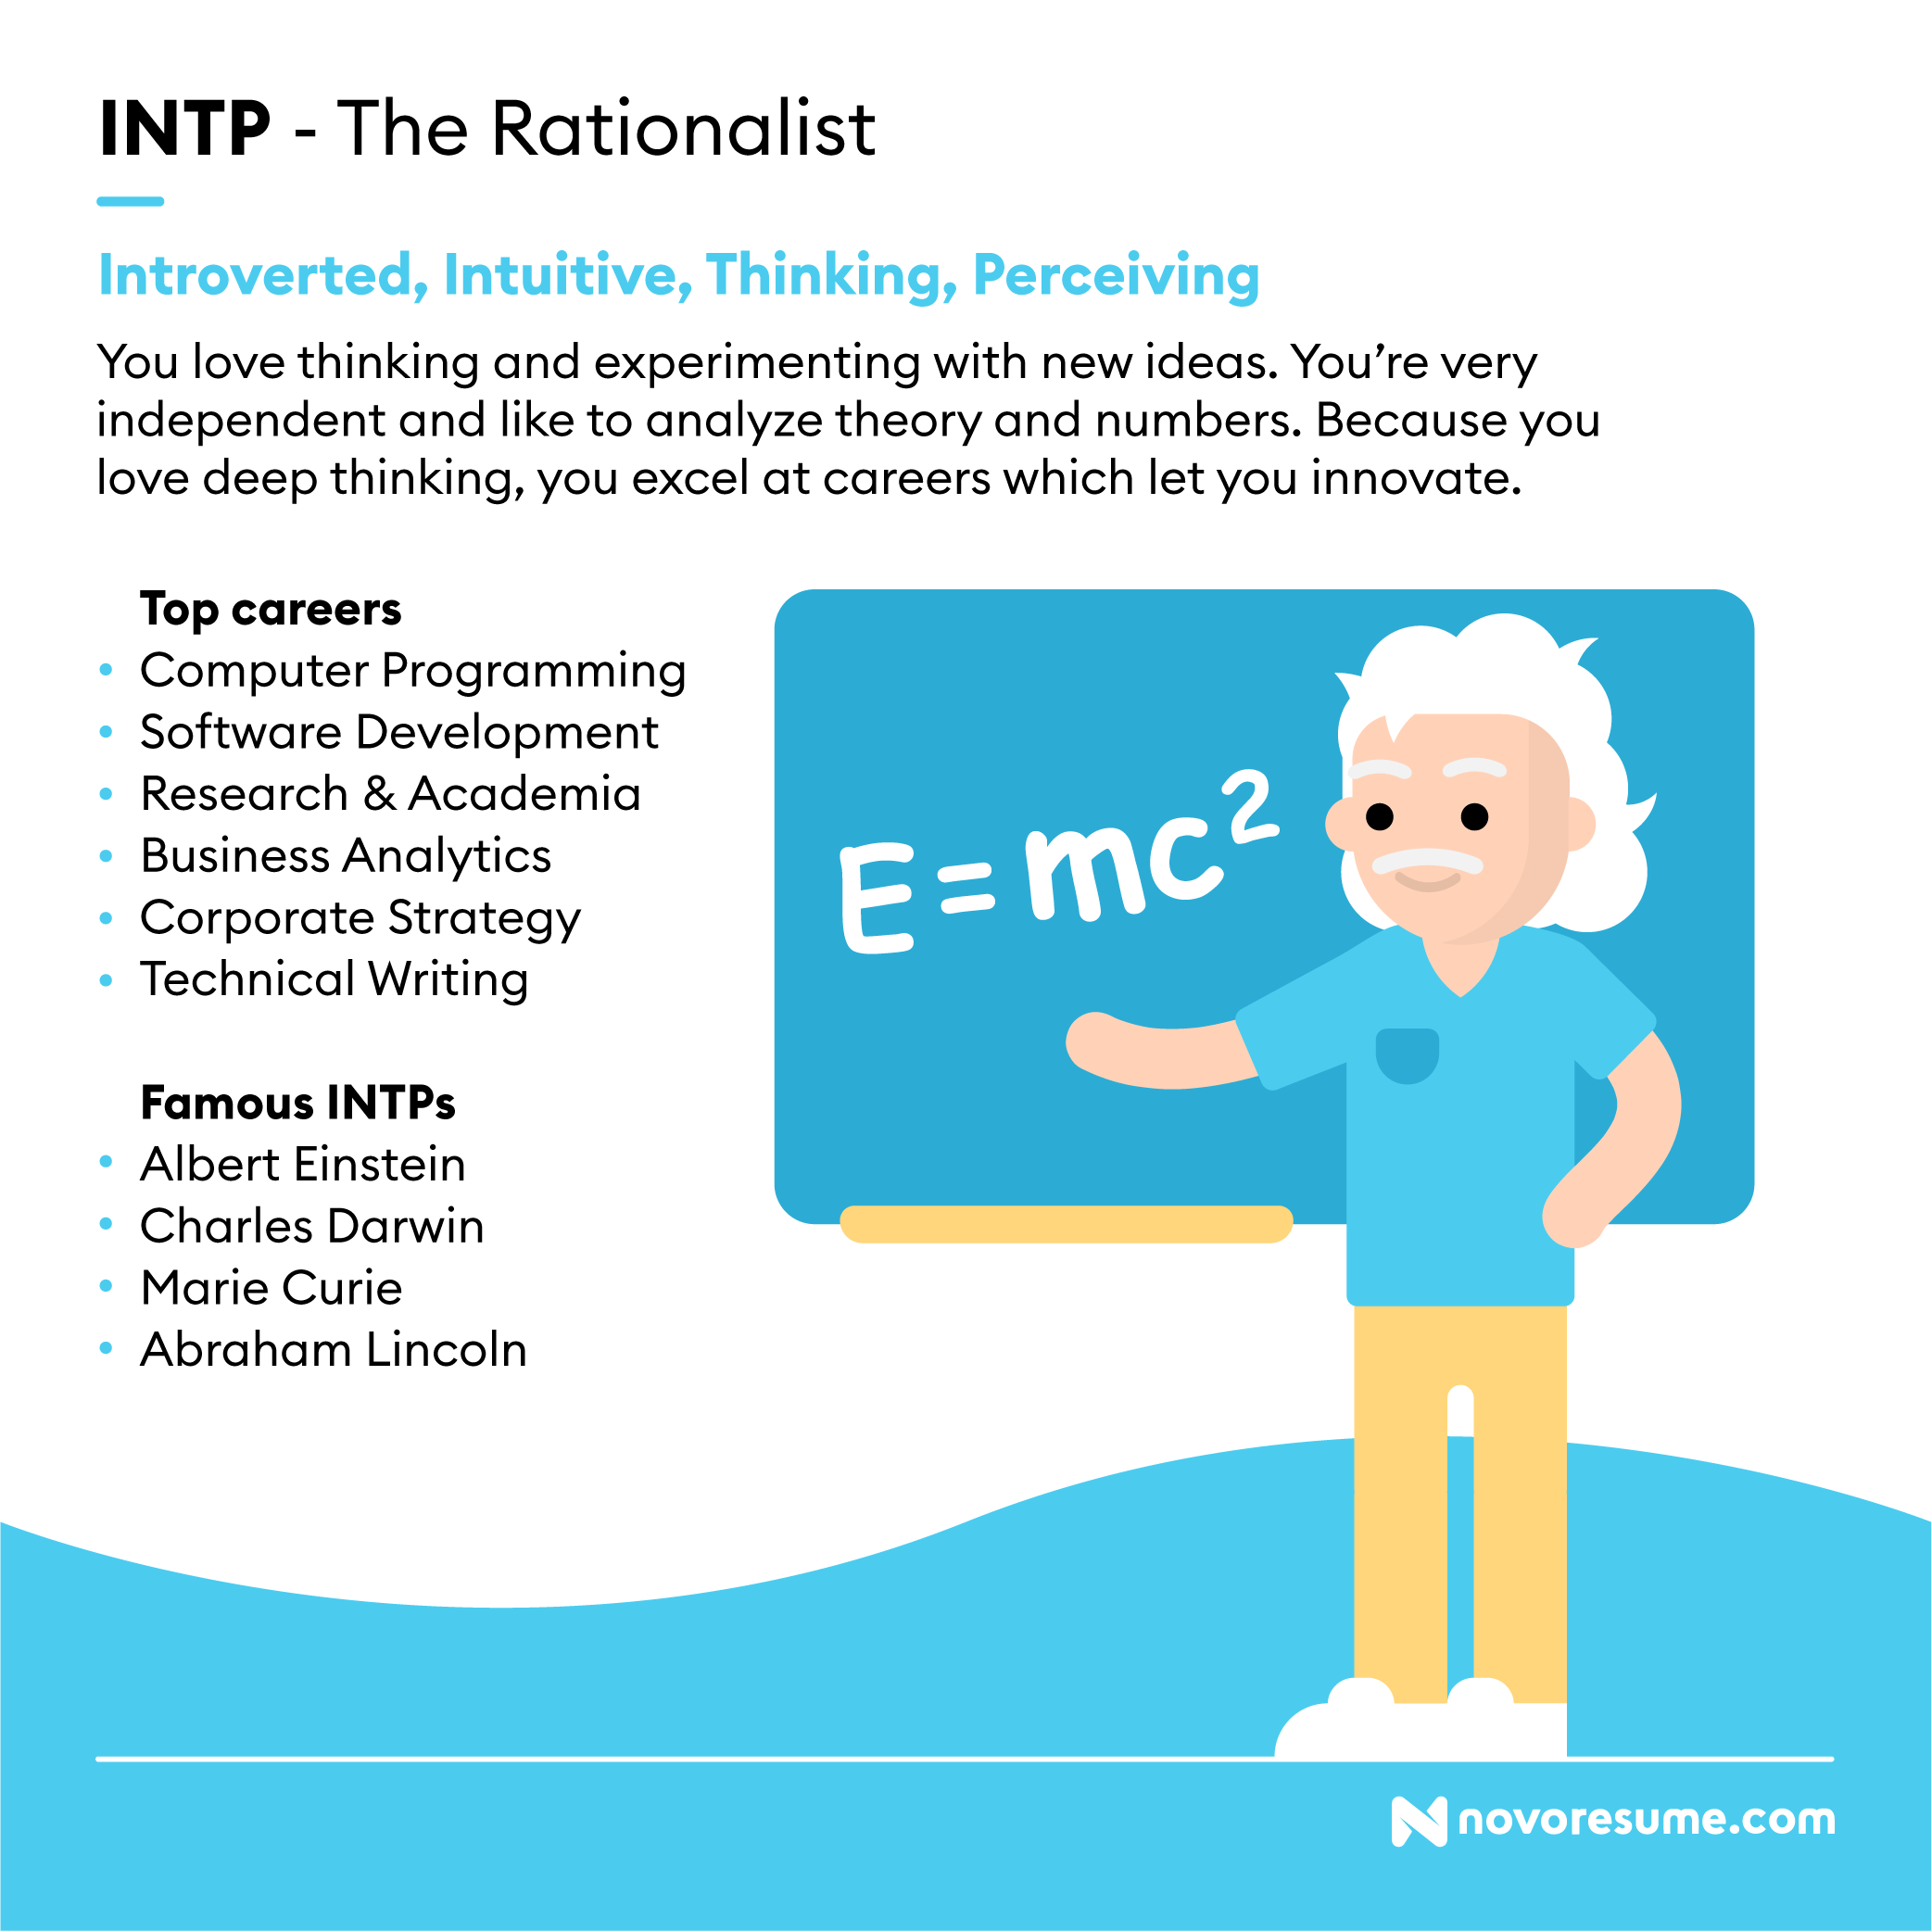 INTP The Rationalist